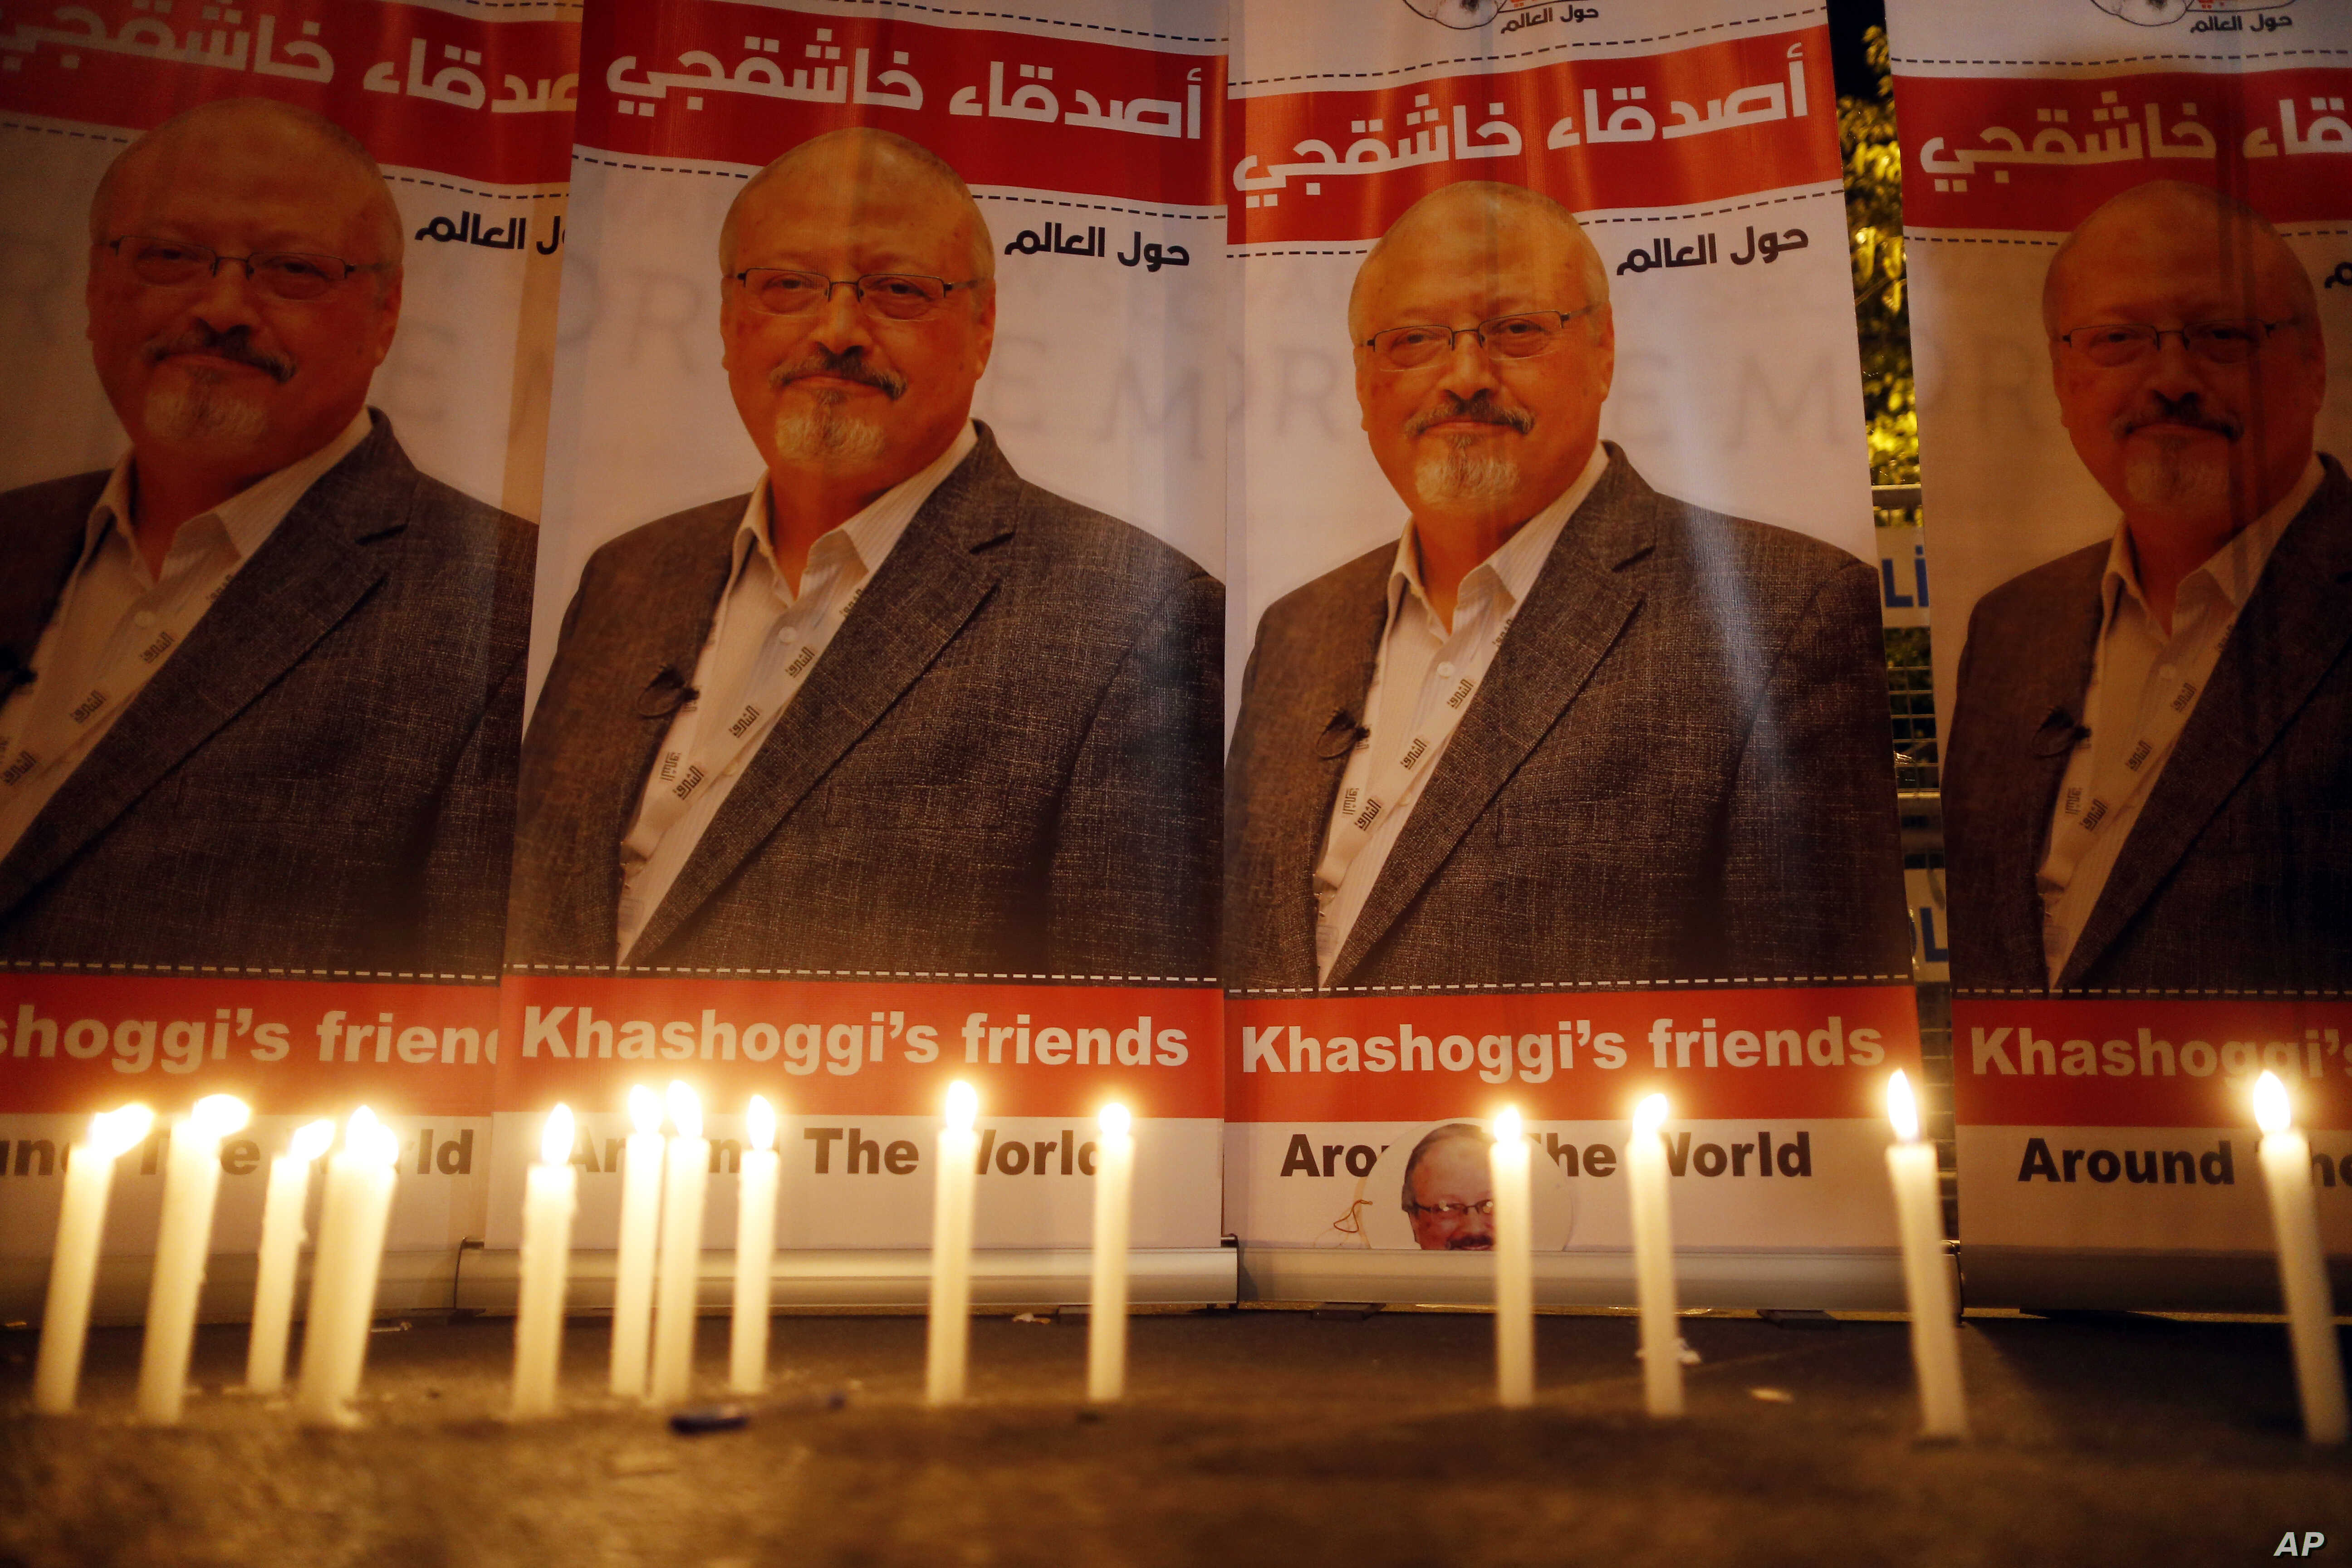 Candles, lit by activists, protesting the killing of Saudi journalist Jamal Khashoggi, are placed outside Saudi Arabia's consulate, in Istanbul, during a candlelight vigil, Oct. 25, 2018.